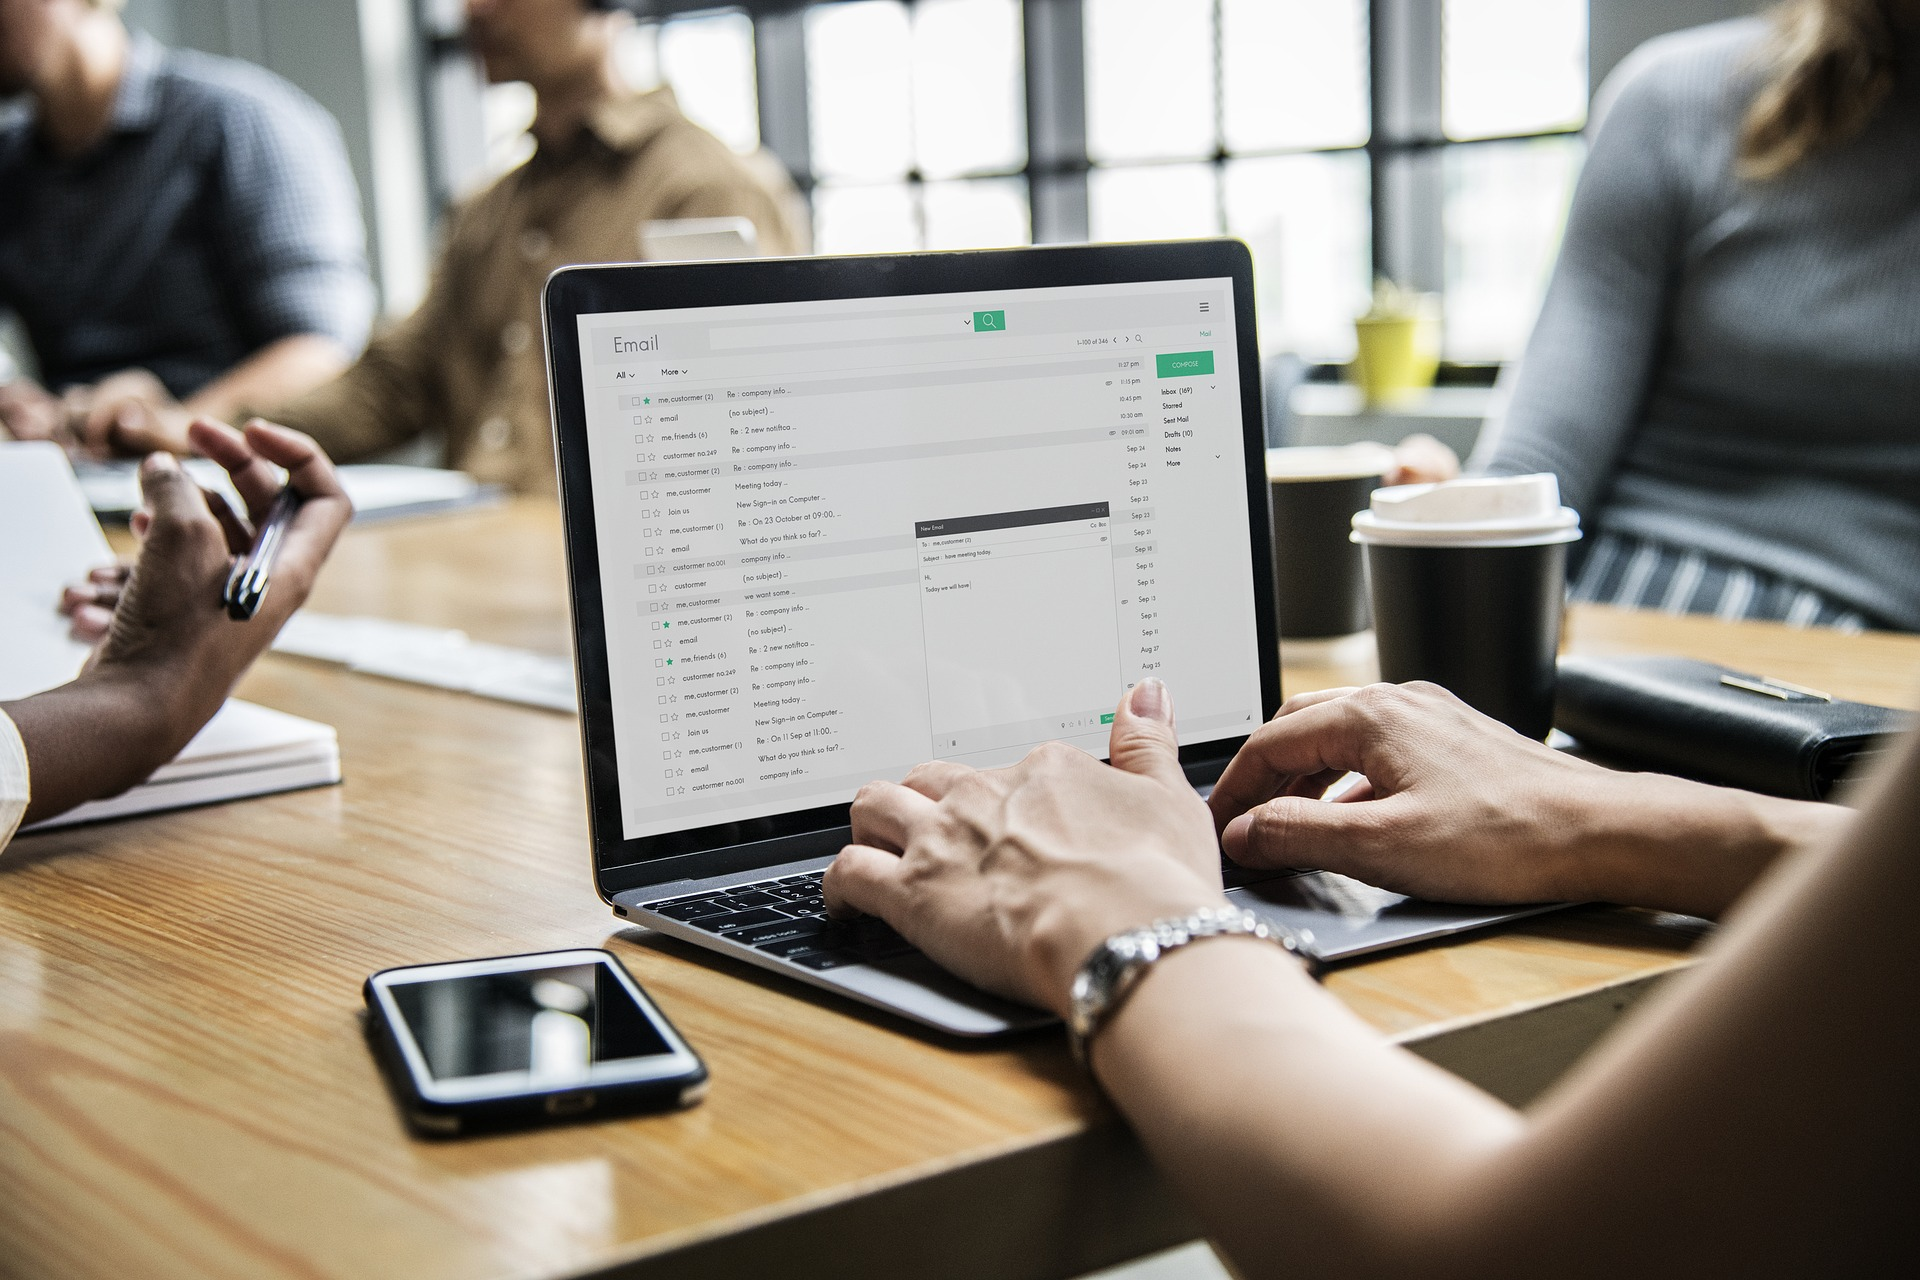 Wondering how to set up file naming conventions for your company? Implementing file and folder organization saves your company time and money. Here's how to organize your business files.